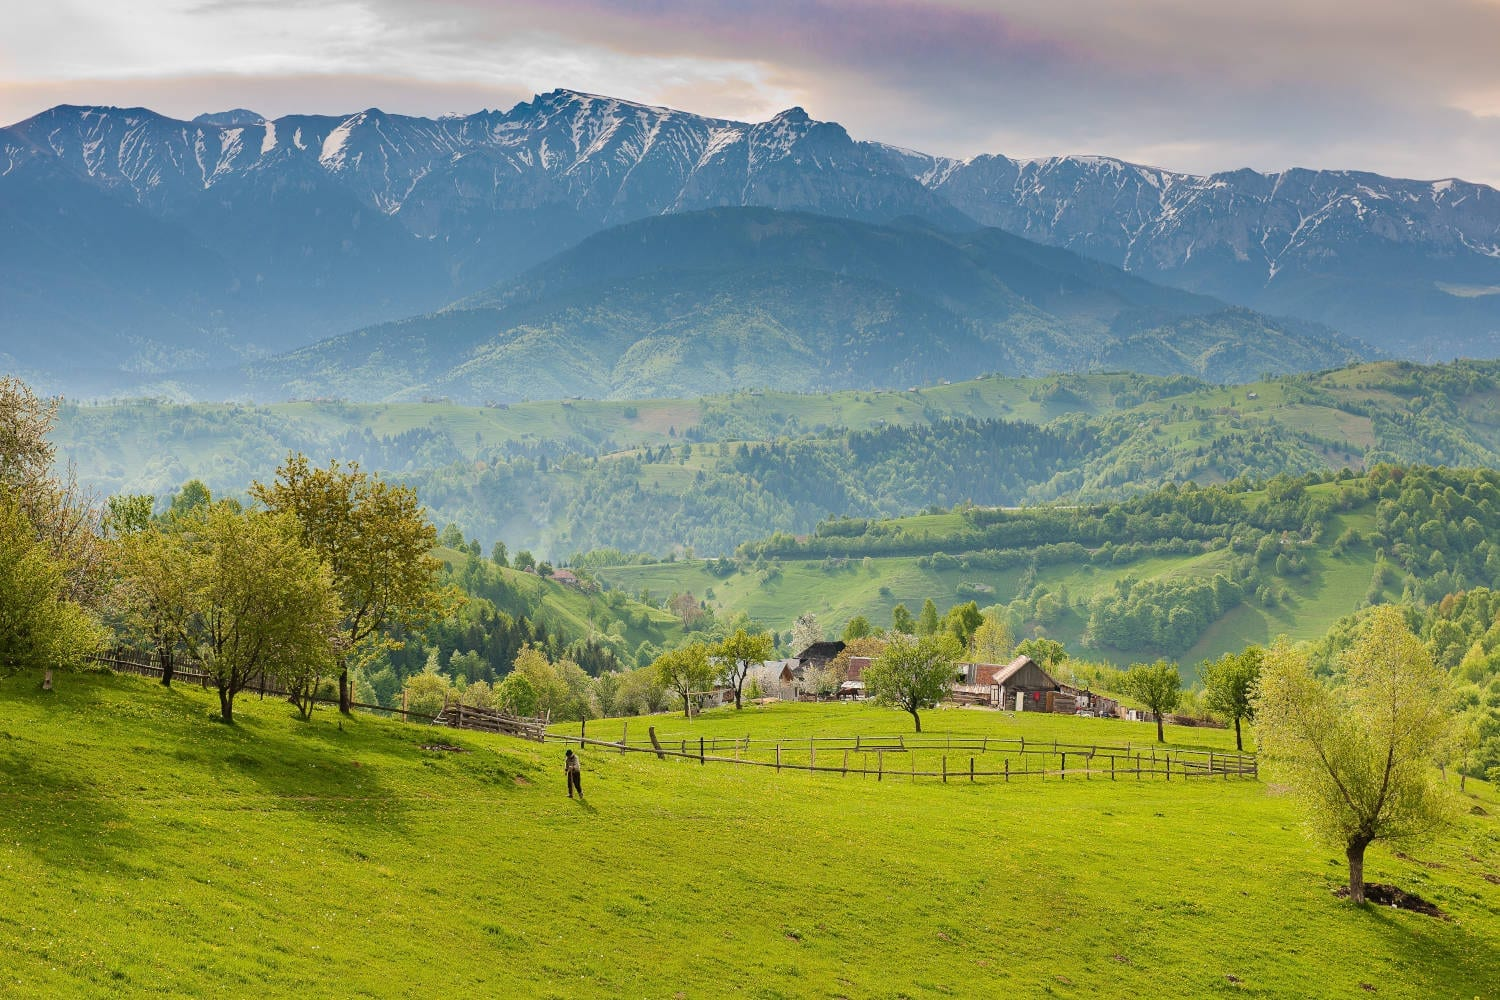 Mountain scenery in Romania